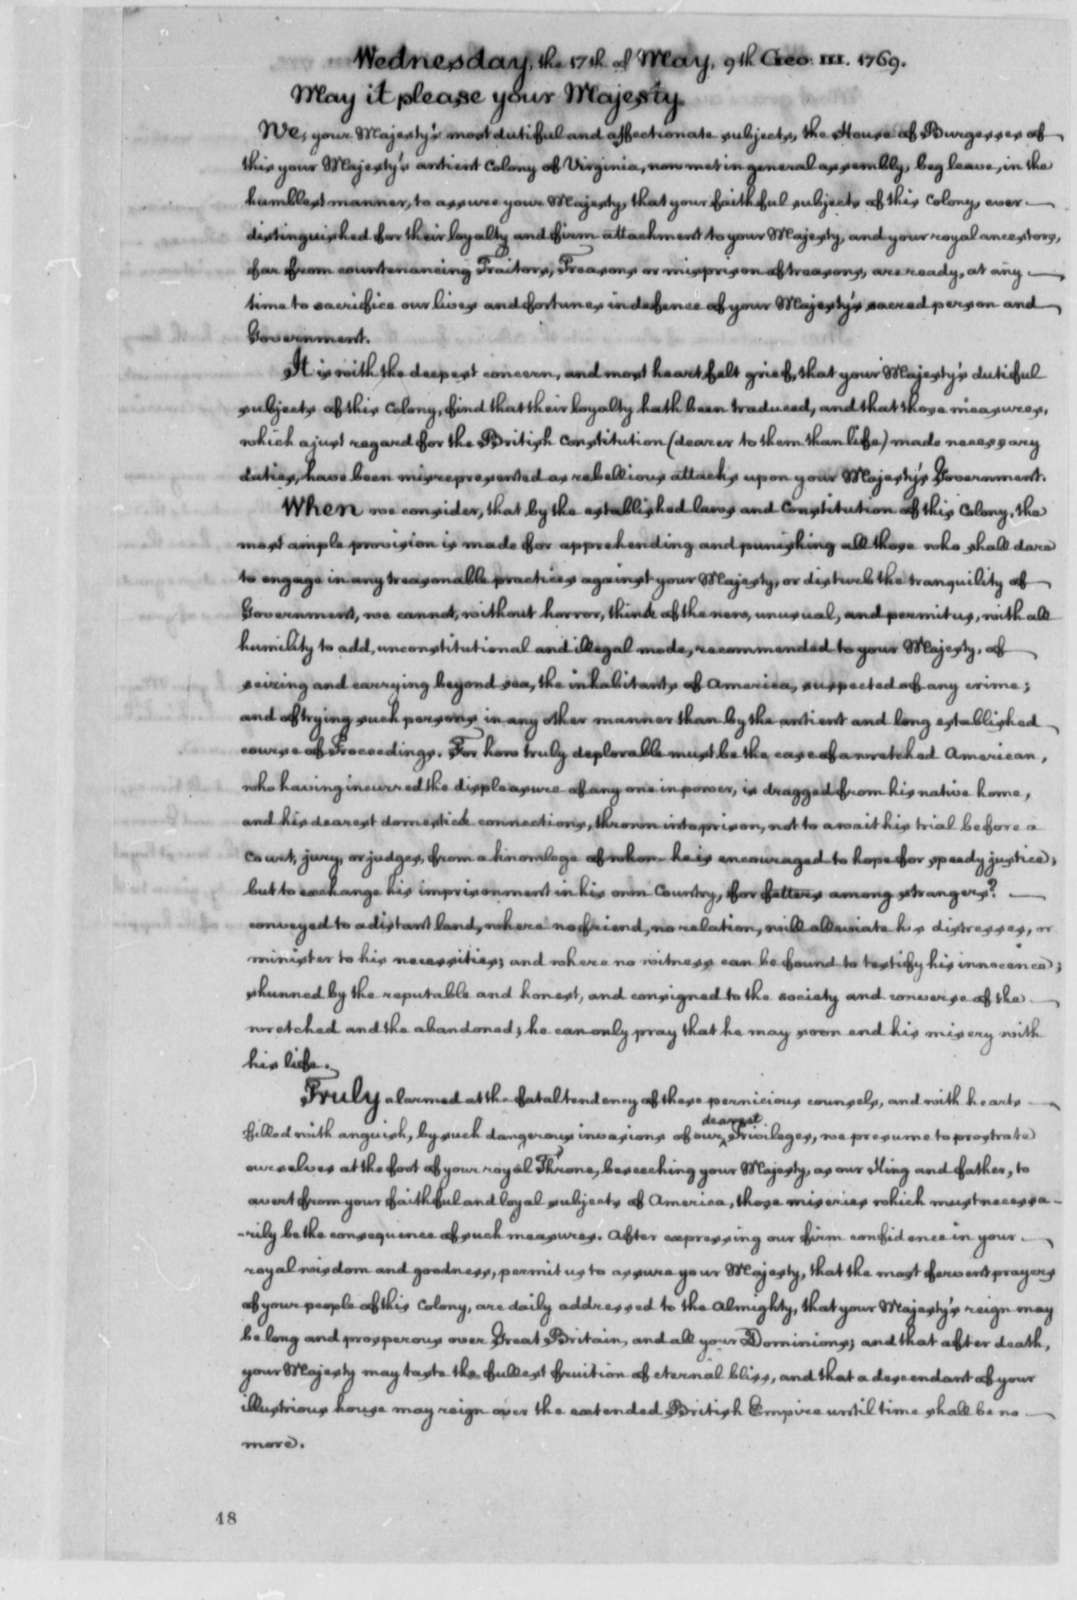 Virginia Colony to George III of England, May 17, 1769, Petition Against Deportation of Prisoners